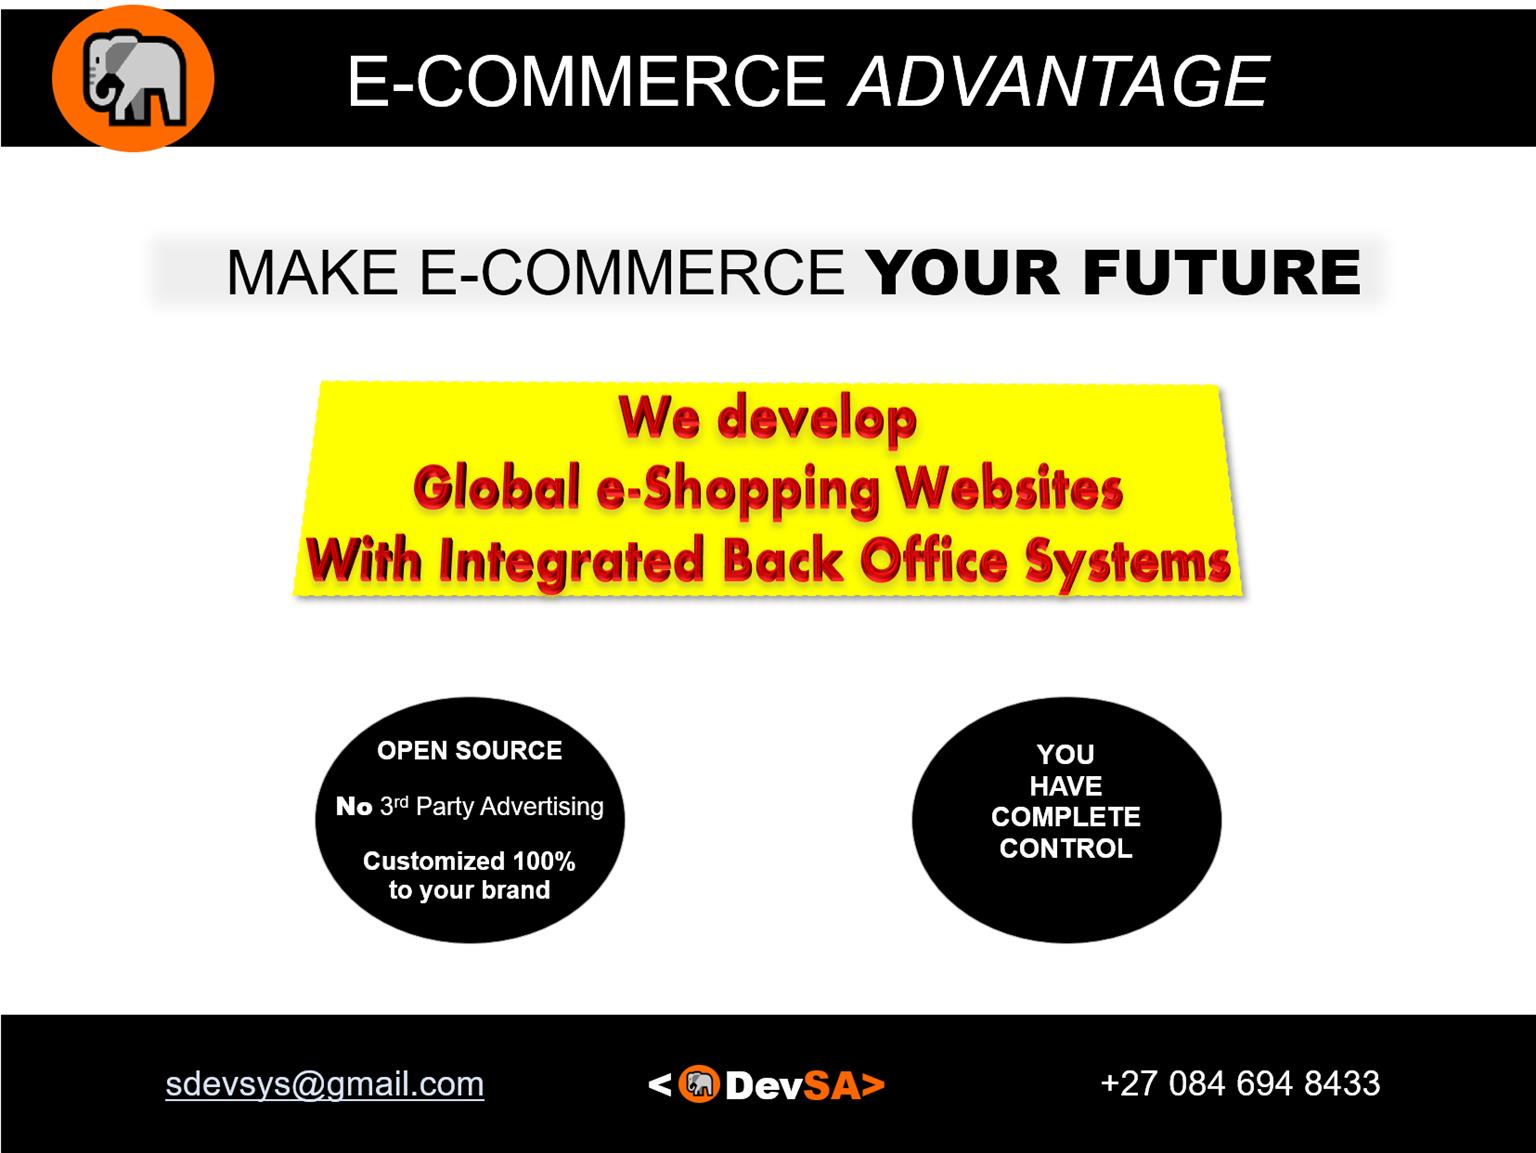 MAKE E-COMMERCE YOUR FUTURE